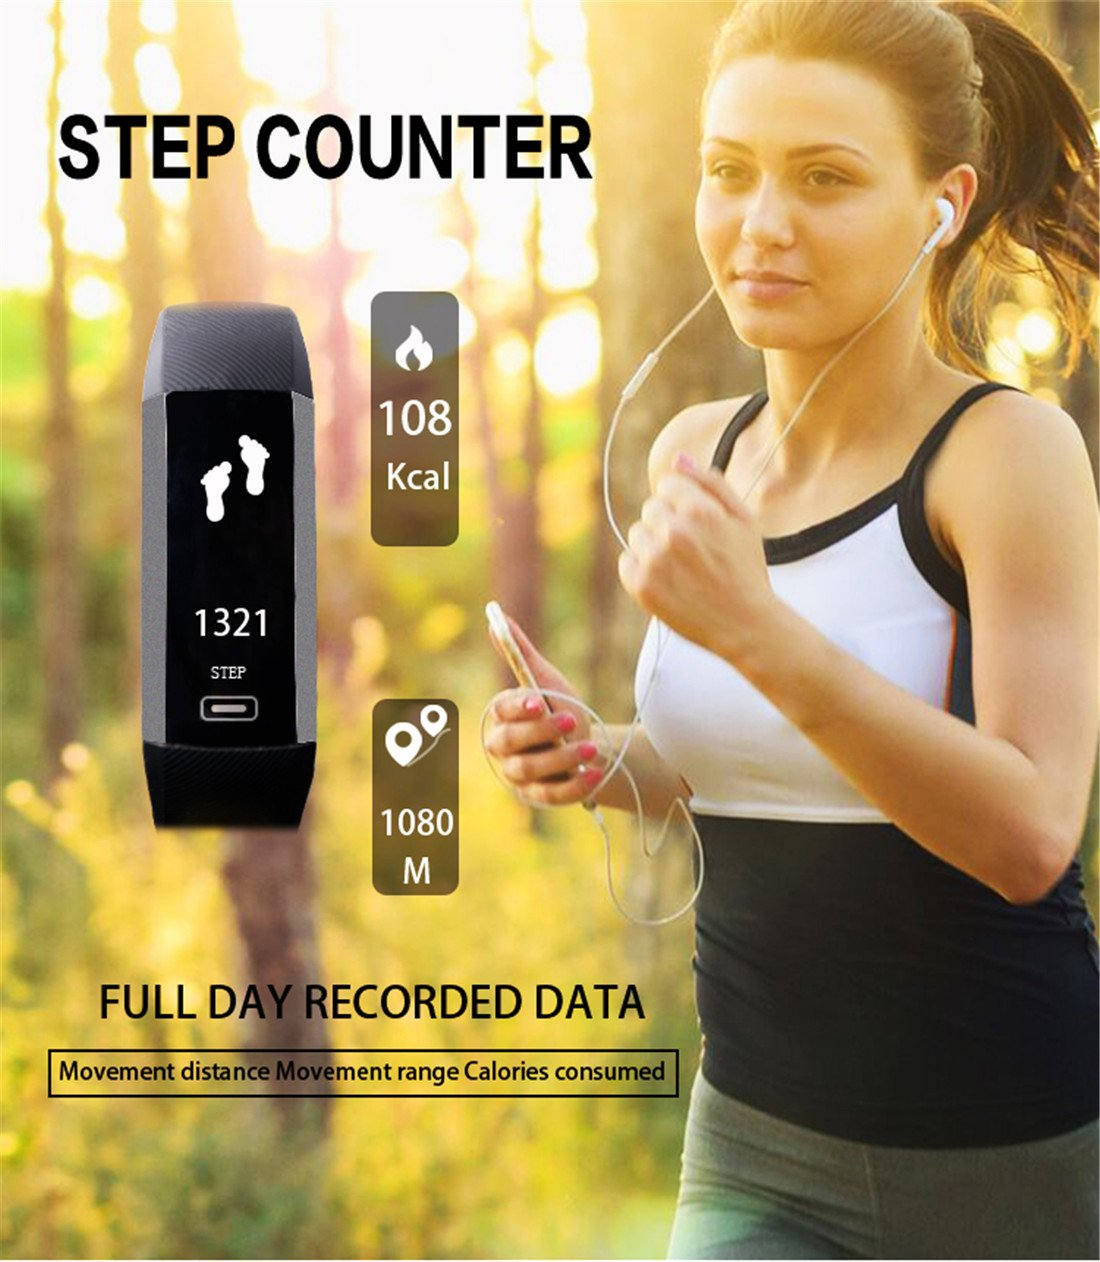 Smart Watch Fitness Tracker Read R5.PRO Heart Rate Monitor Blood Pressure Bracelet Pedometer Activity Tracker Sleep Monitoring Call SMS SNS Remind Watch for Android iOS (Black)